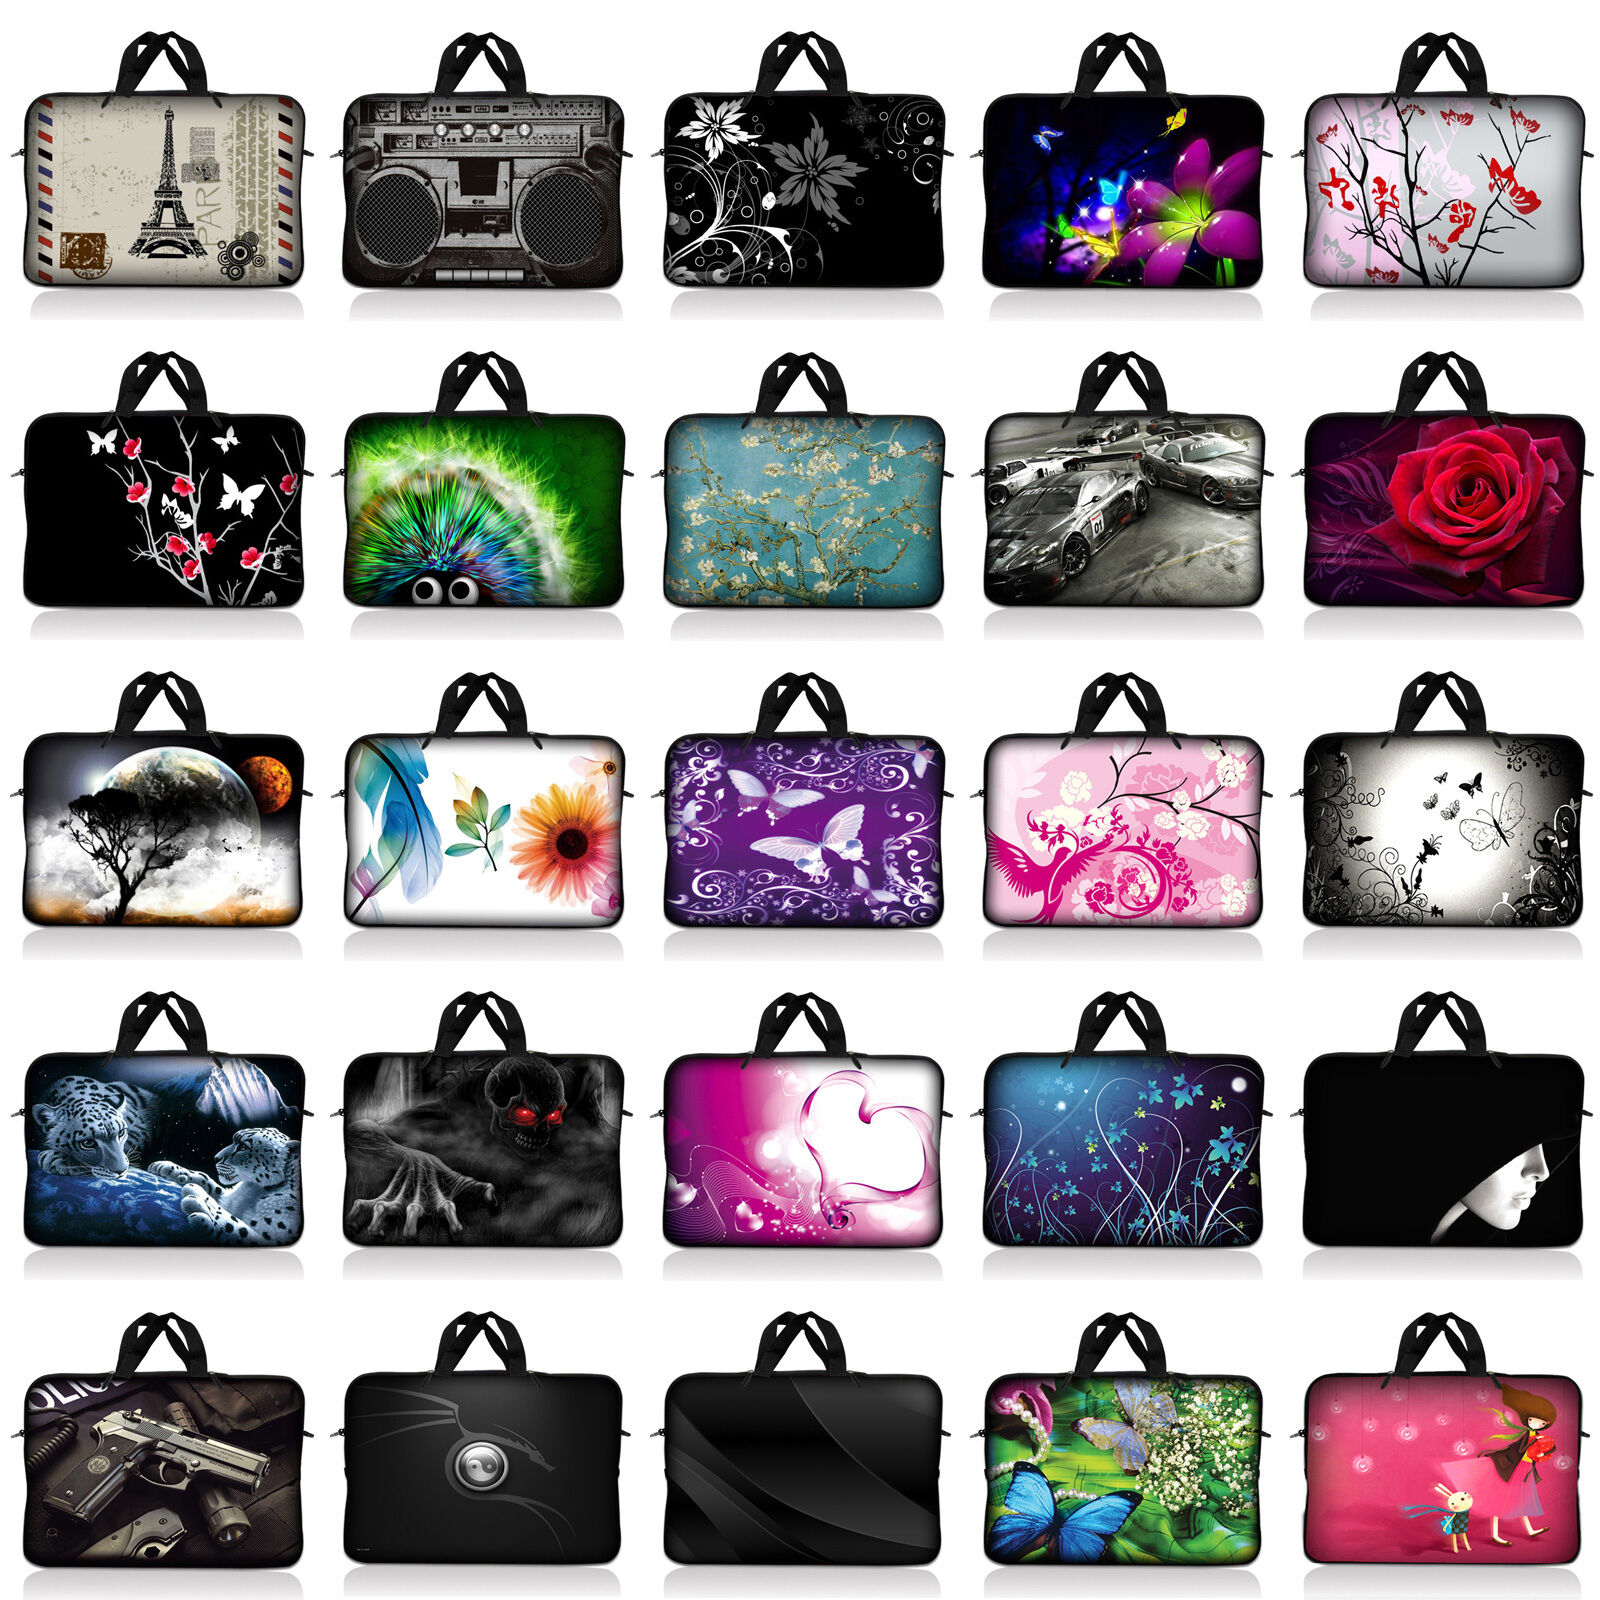 Neoprene Sleeve Laptop Computer Case Bag w/ Handle Fit 10 in